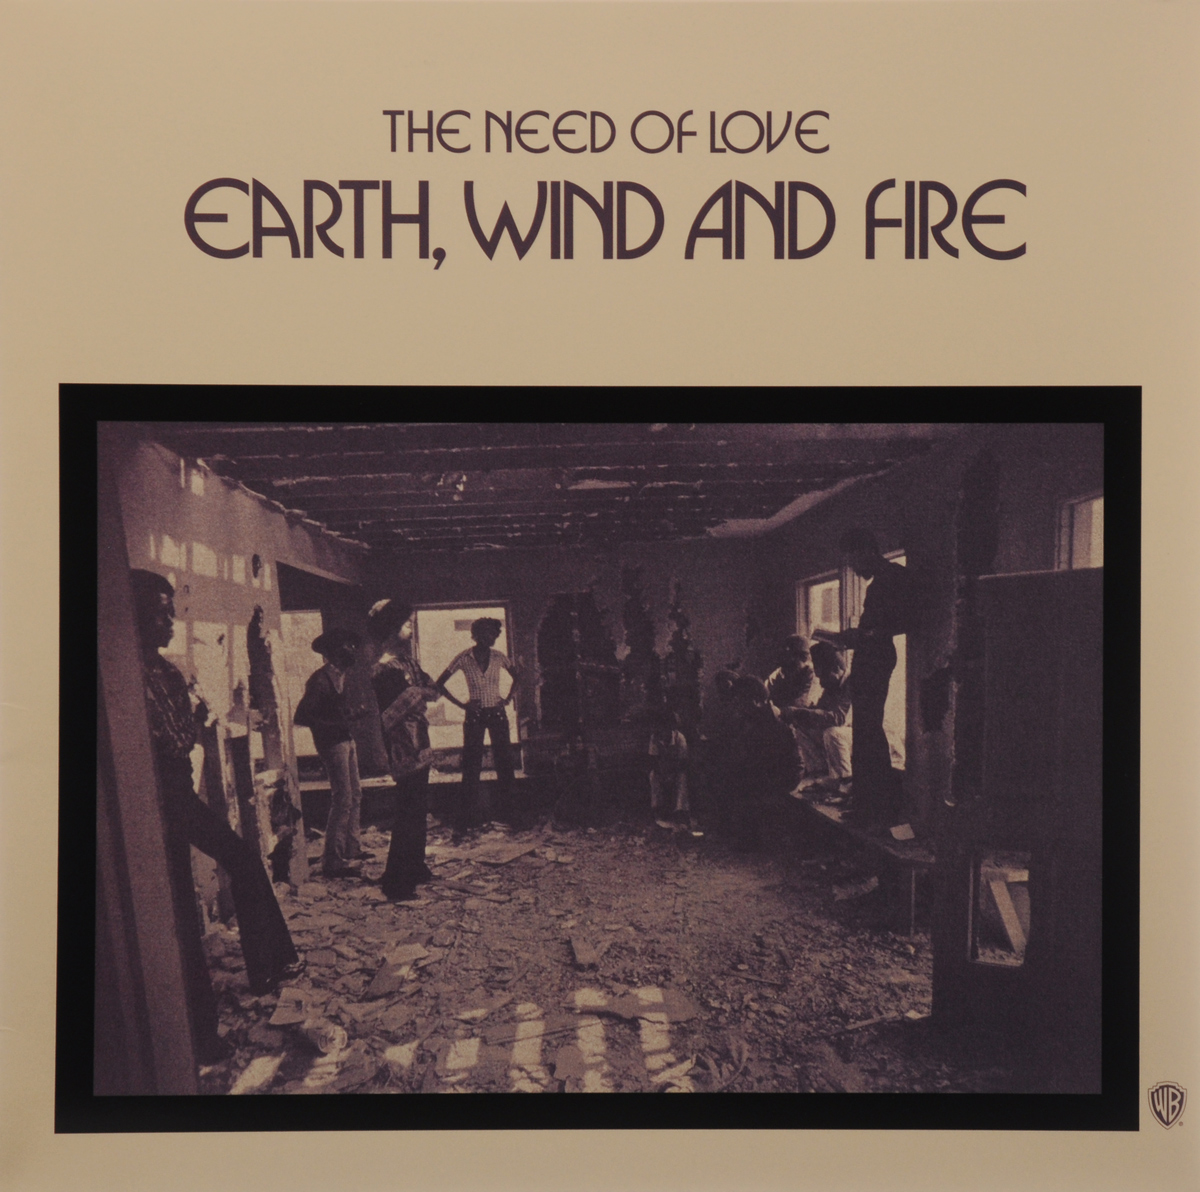 Earth, Wind And Fire Earth, Wind And Fire. The Need Of Love (LP) the o jays earth wind and fire билл уизерс dj reverend p shelter m f s b билли пол гарольд мелвин the blue notes тайрон дэвис the legacy of soul 2 lp